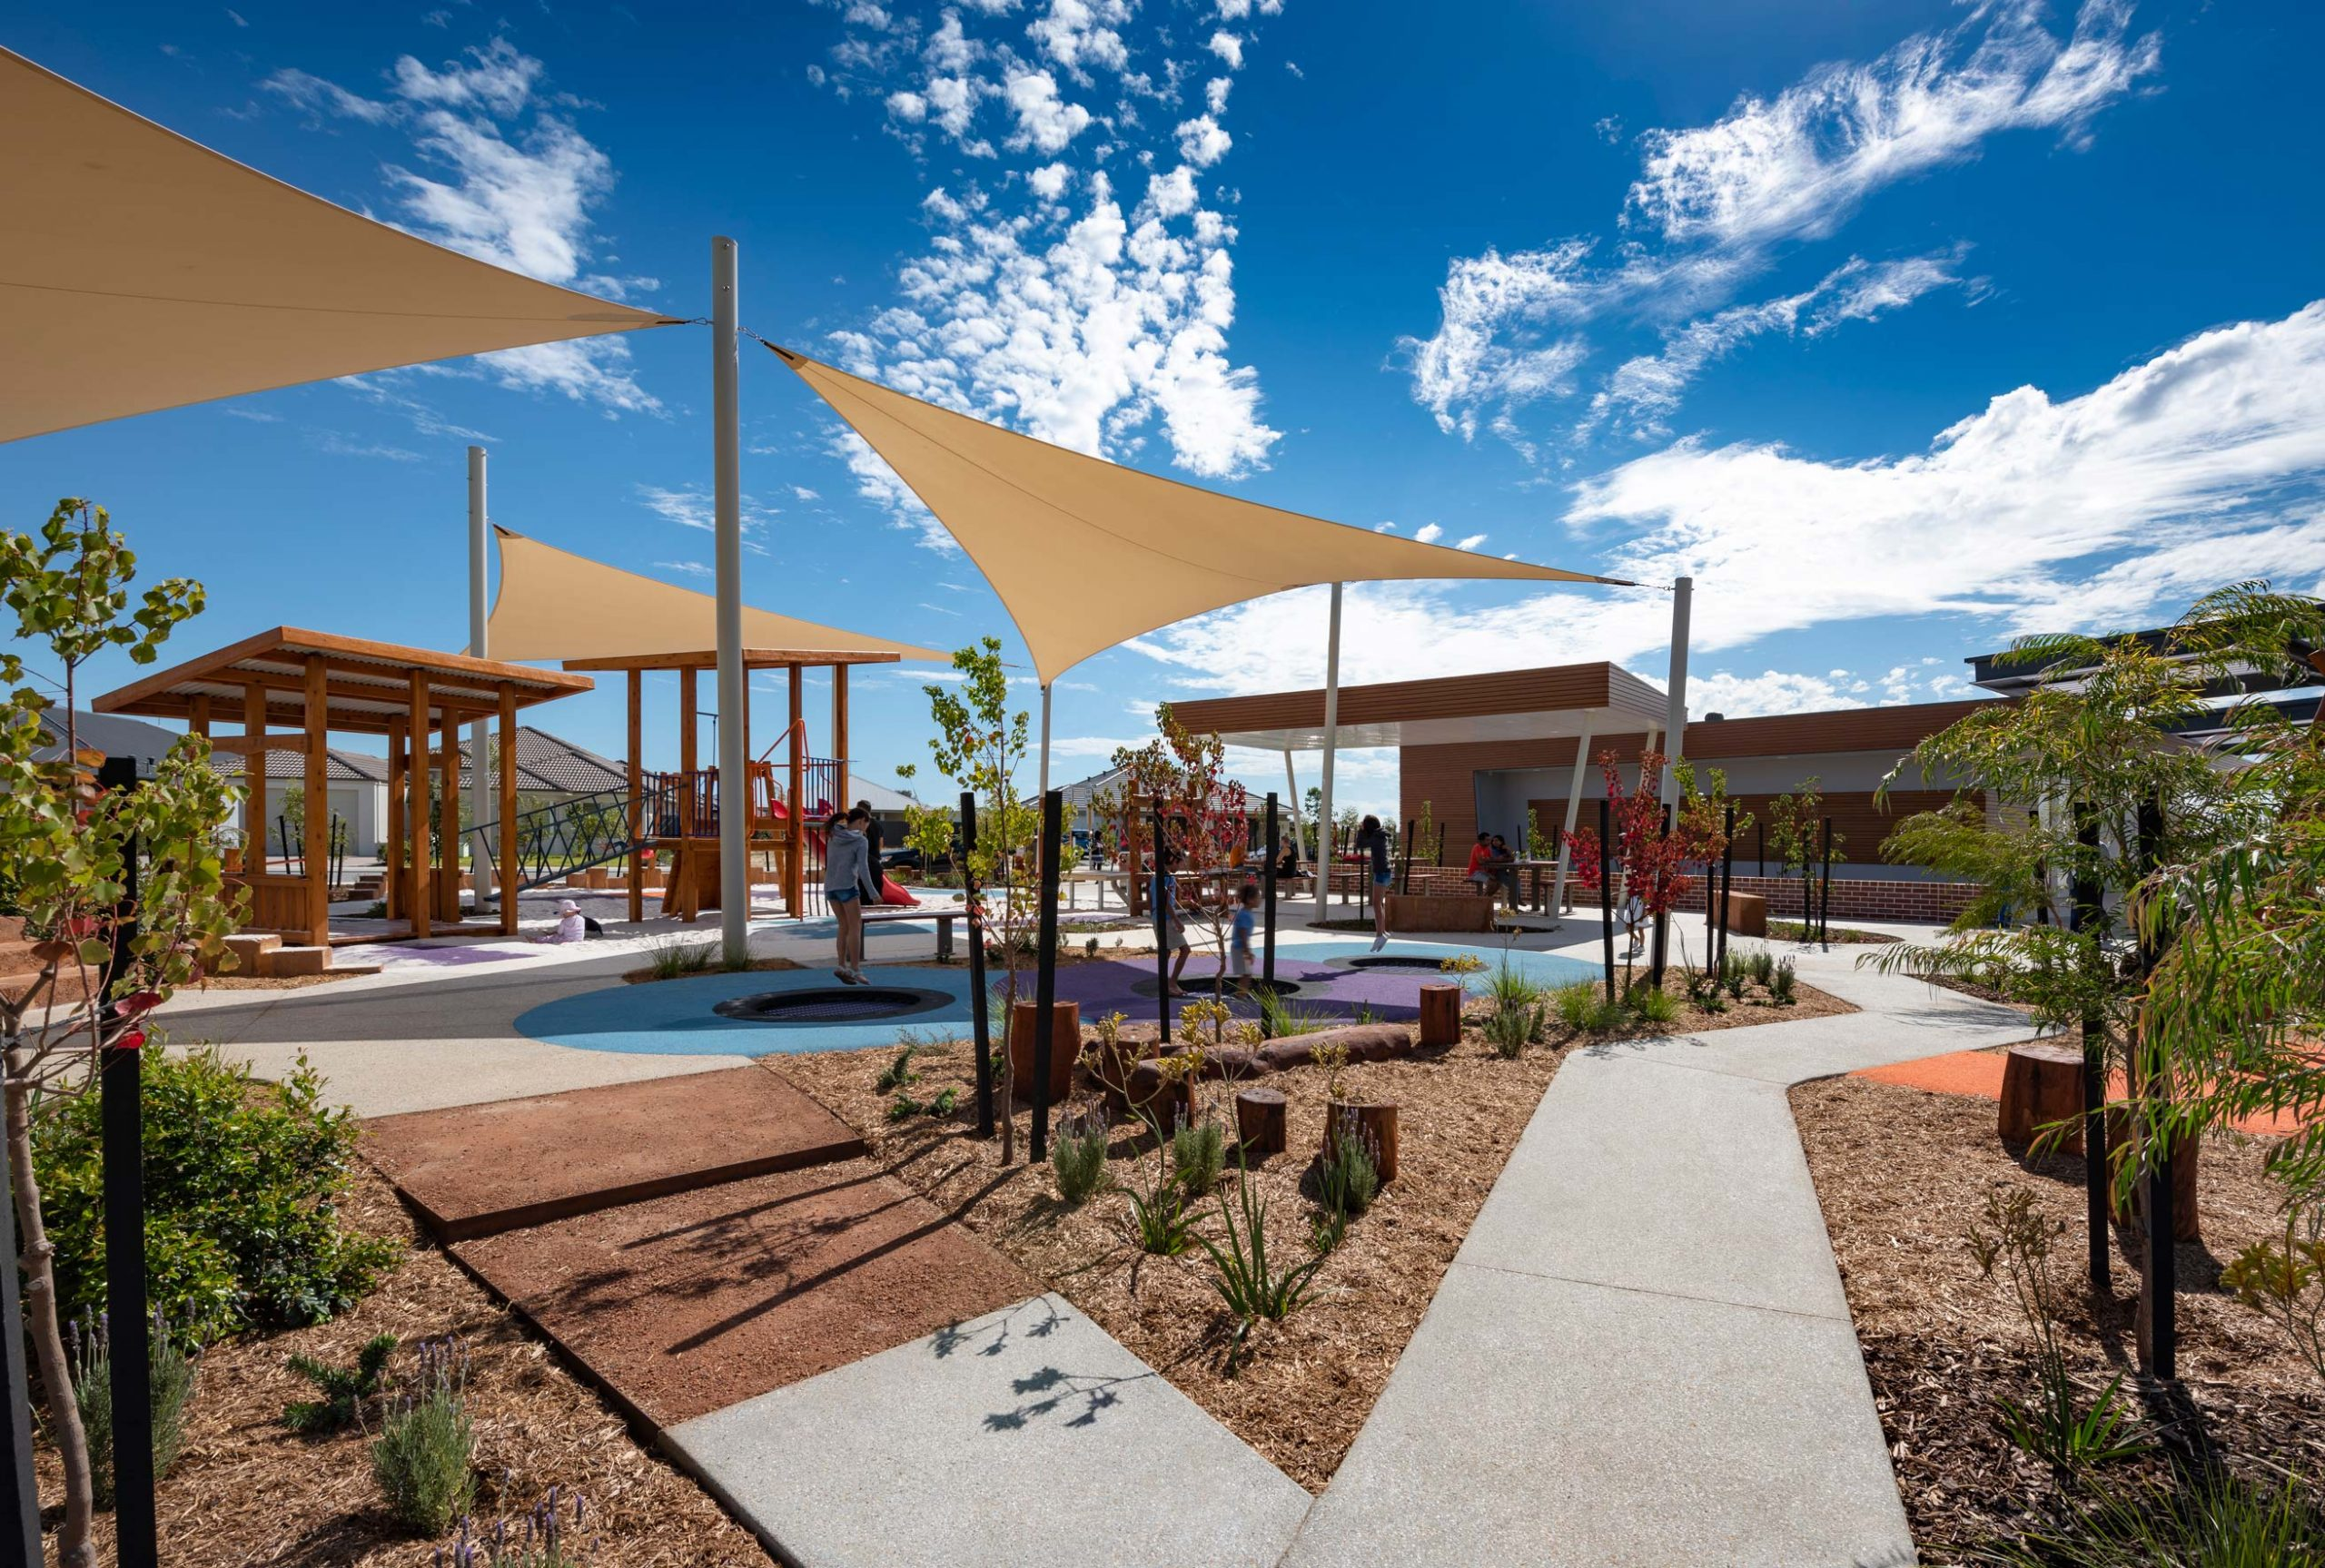 Nature playground with shade sails and plants at Rossiter Sports & Community Pavilion